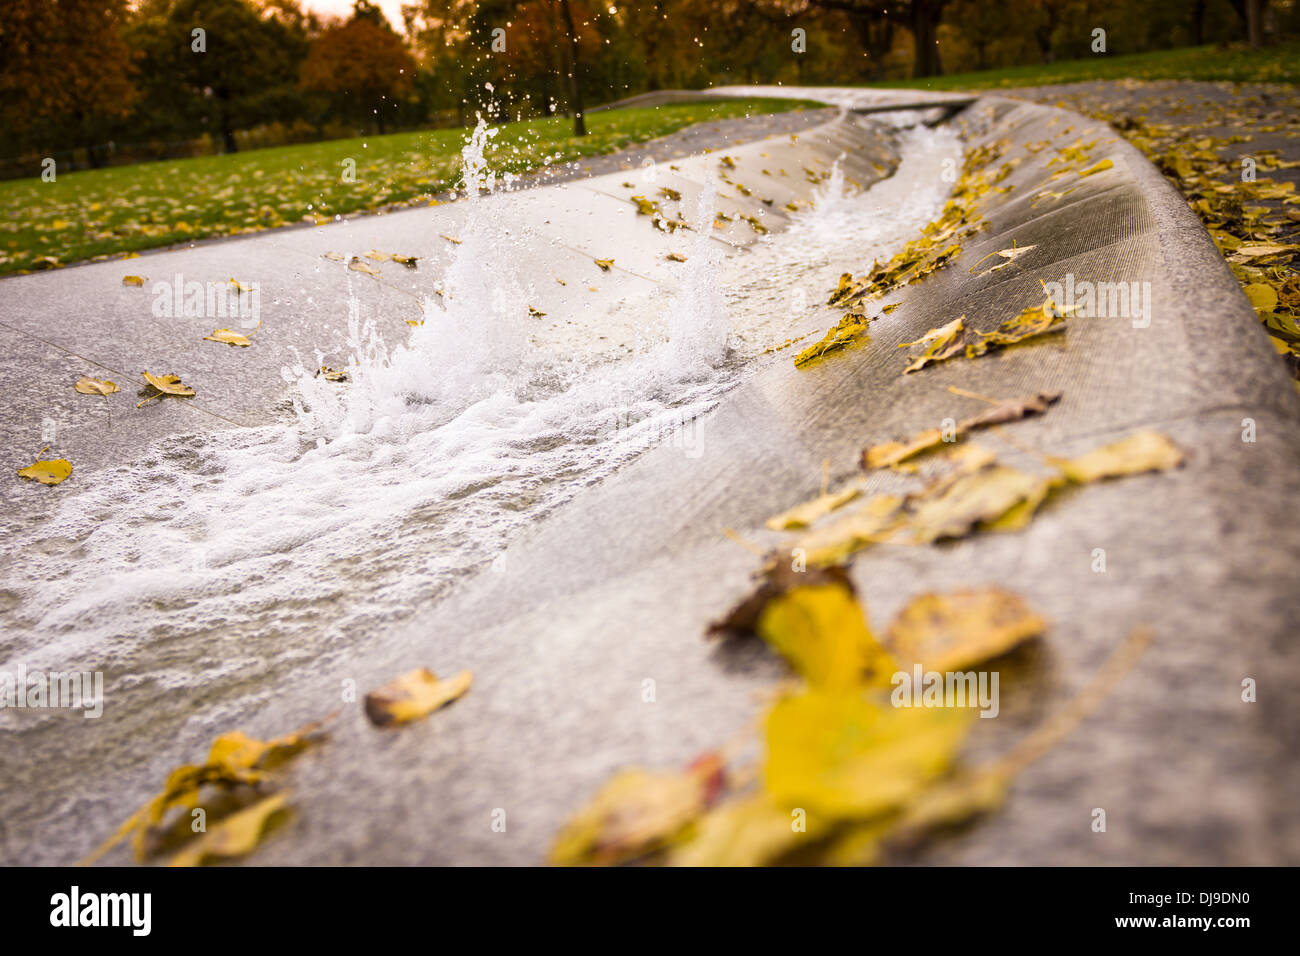 The Diana, Princess of Wales Memorial Fountain, in Hyde Park on an early November morning. - Stock Image